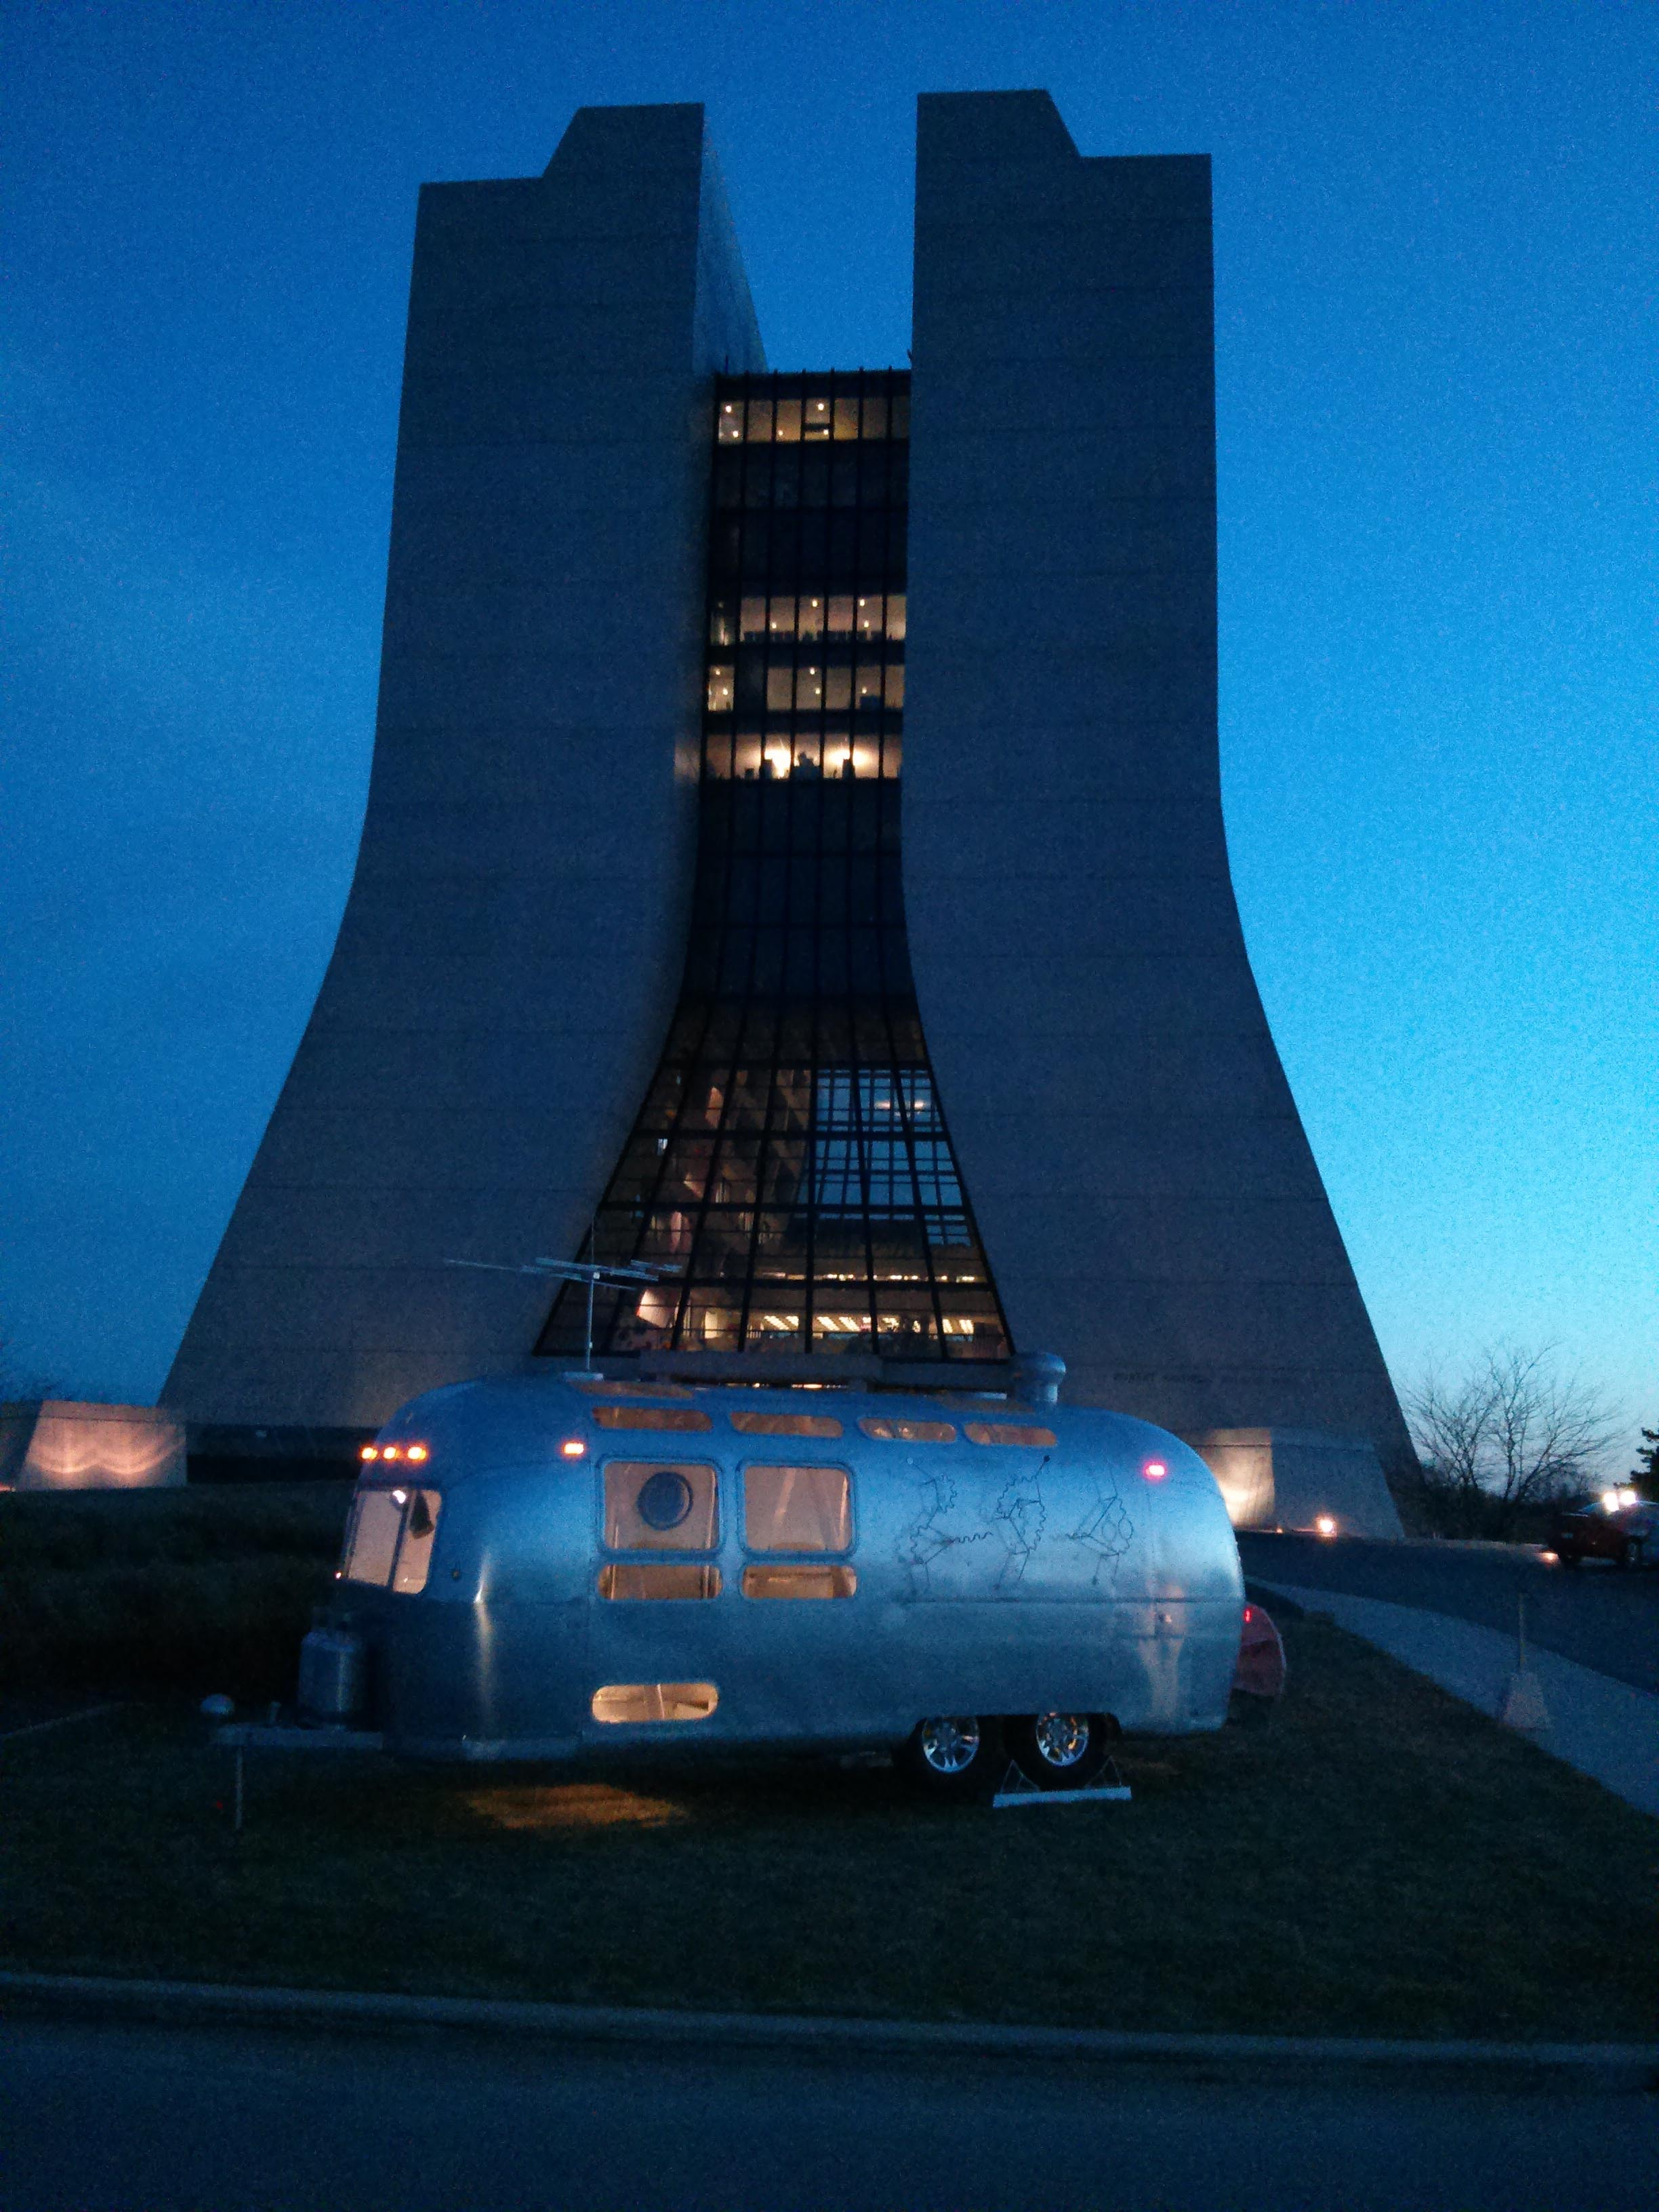 With the recent installation of an Airstream trailer on the front lawn of Wilson Hall, it looks as though a family of Feynman fans is camping out overnight at Fermilab. Photo: James Simone, SCD